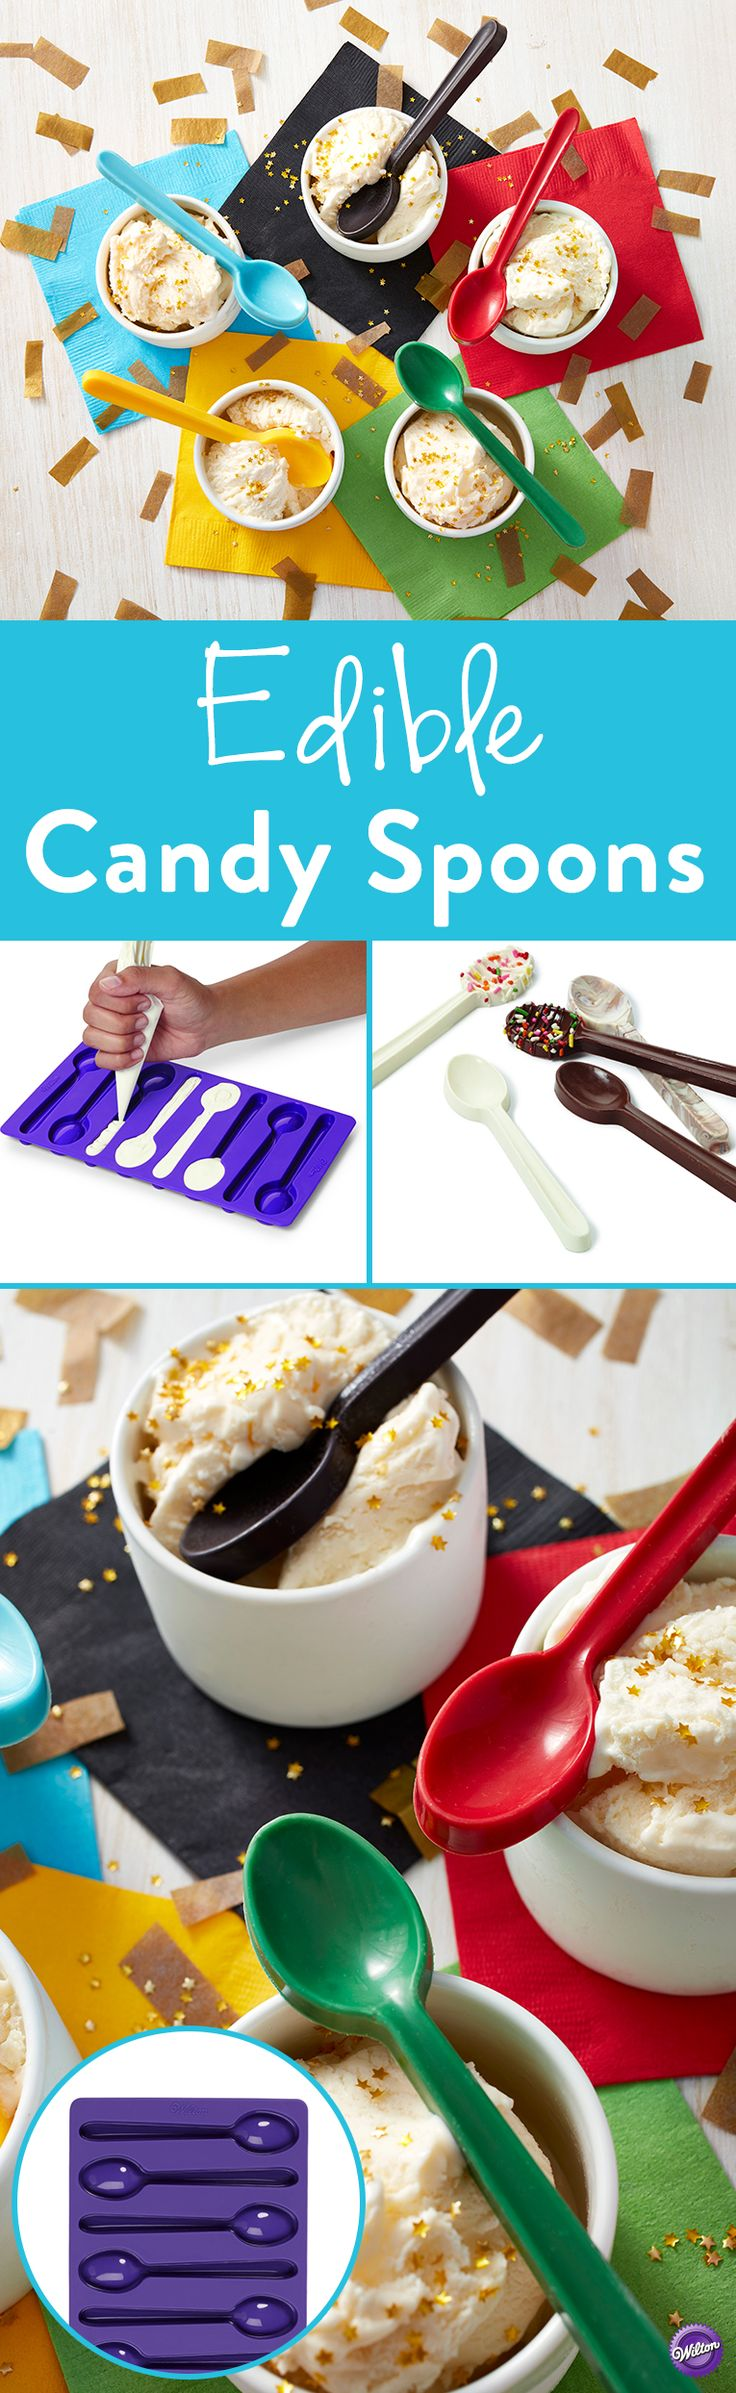 How to Make Candy Spoons - Top off your drinks with edible candy spoon stirrers. The easy-to-use Wilton Spoon-Shaped Silicone Candy Mold makes perfect spoons made using your favorite flavor Candy Melts candy. Just melt Candy Melts candy in the microwave. Fill mold and let chill. Makes 8 spoons. Mold size is 11.44 in. x 5.88 in.